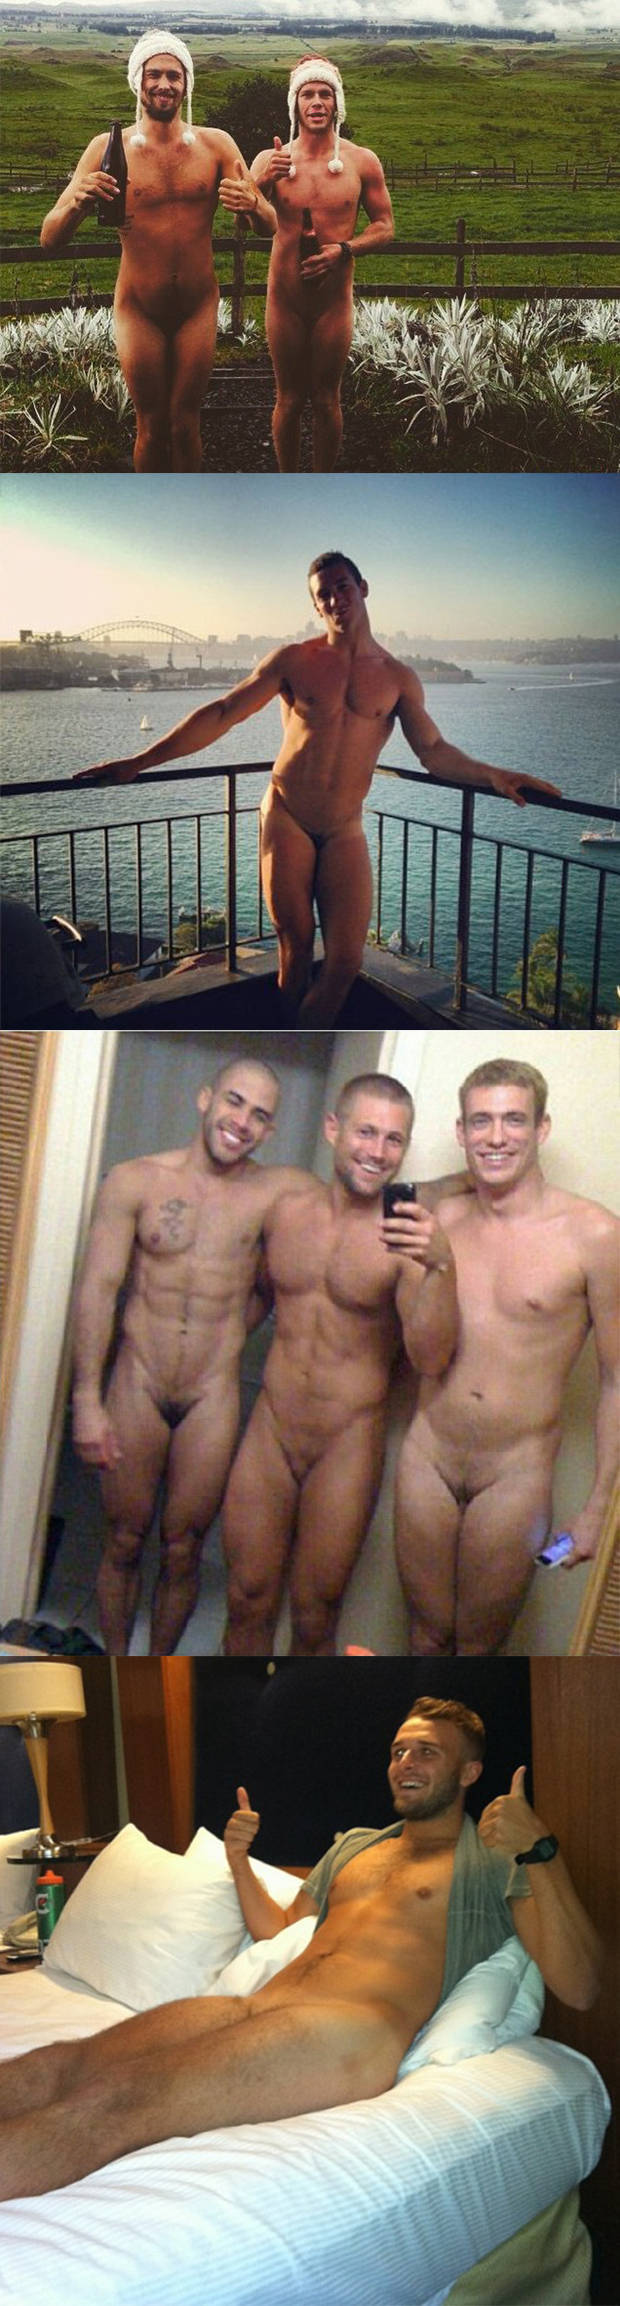 amateur hot manginas naked guys